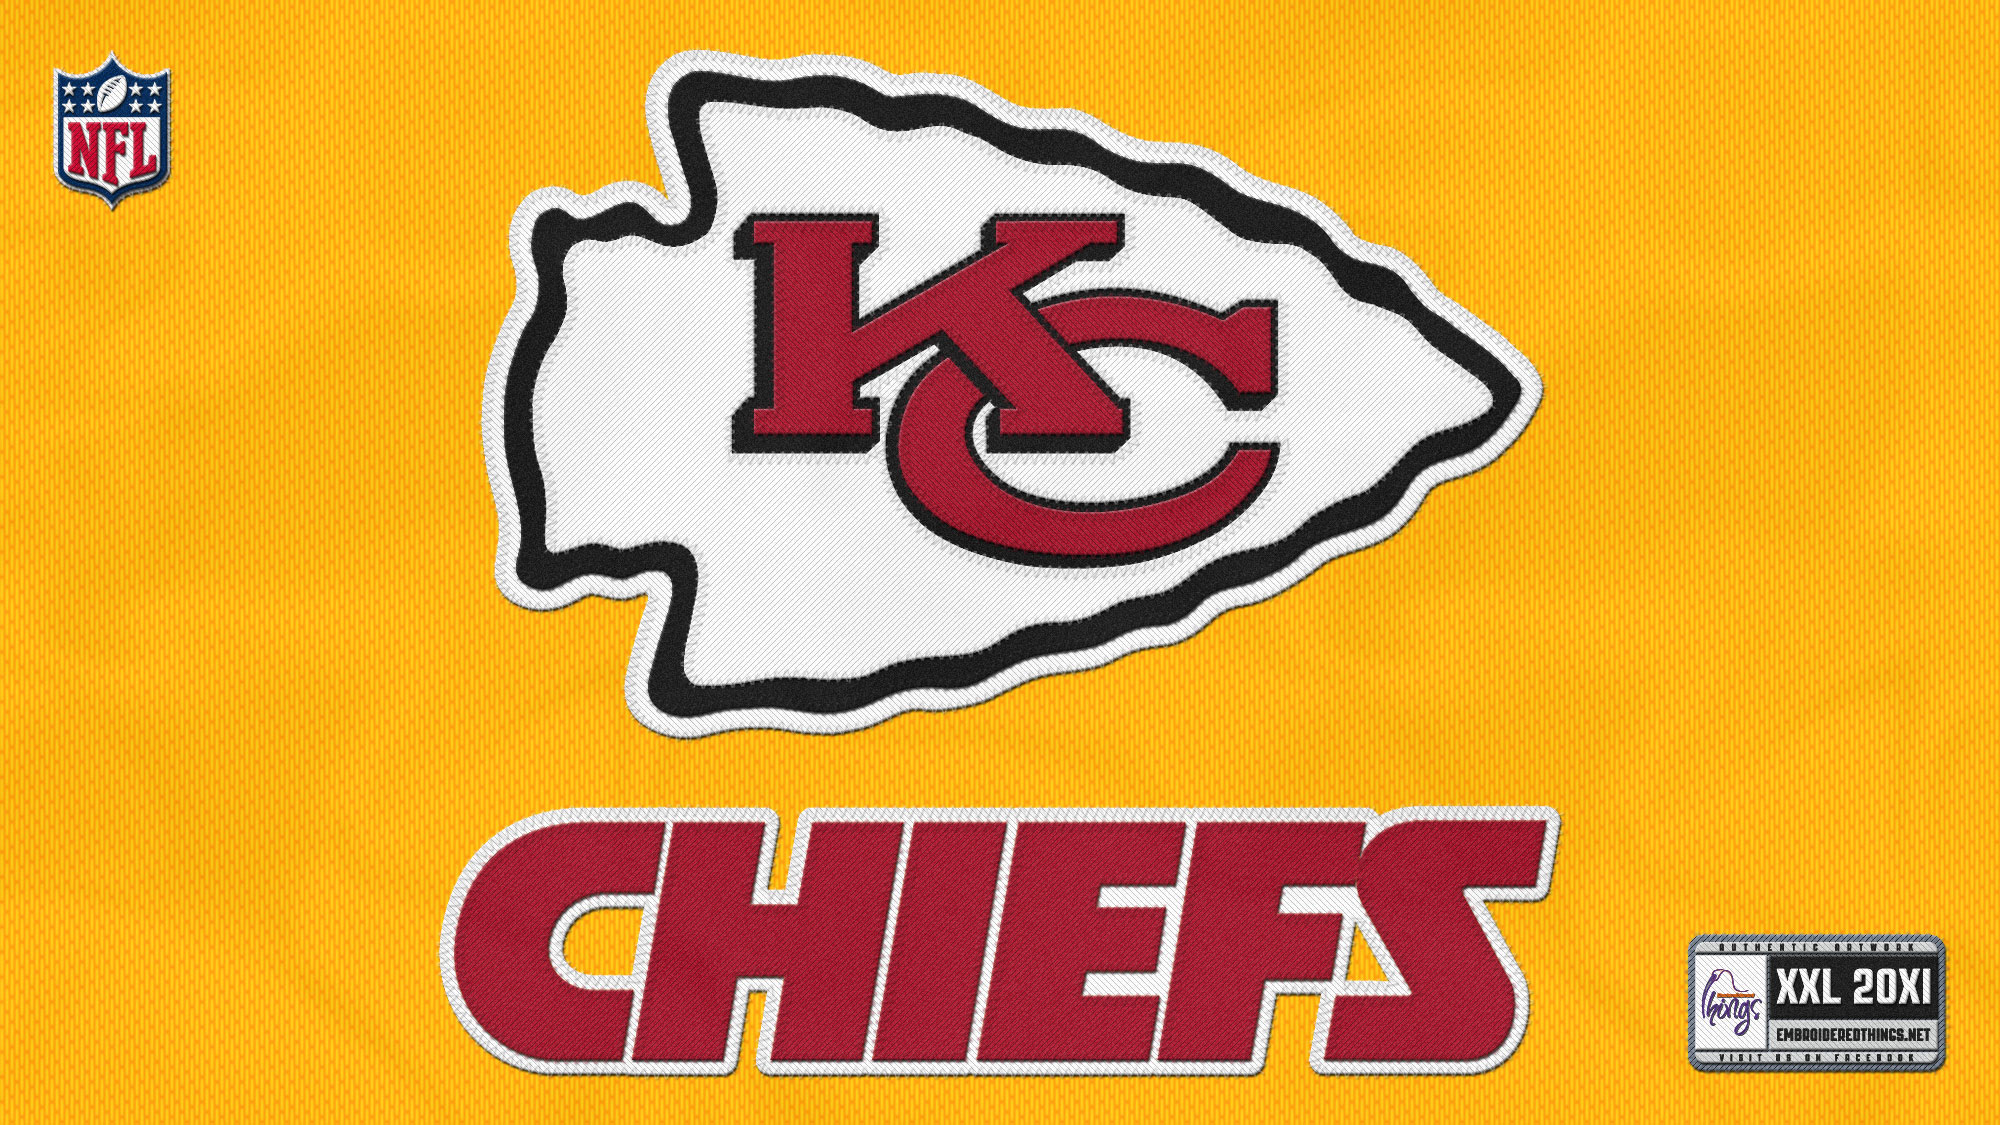 kansas city chiefs wallpaper 4566321 cute Wallpapers 2000x1125